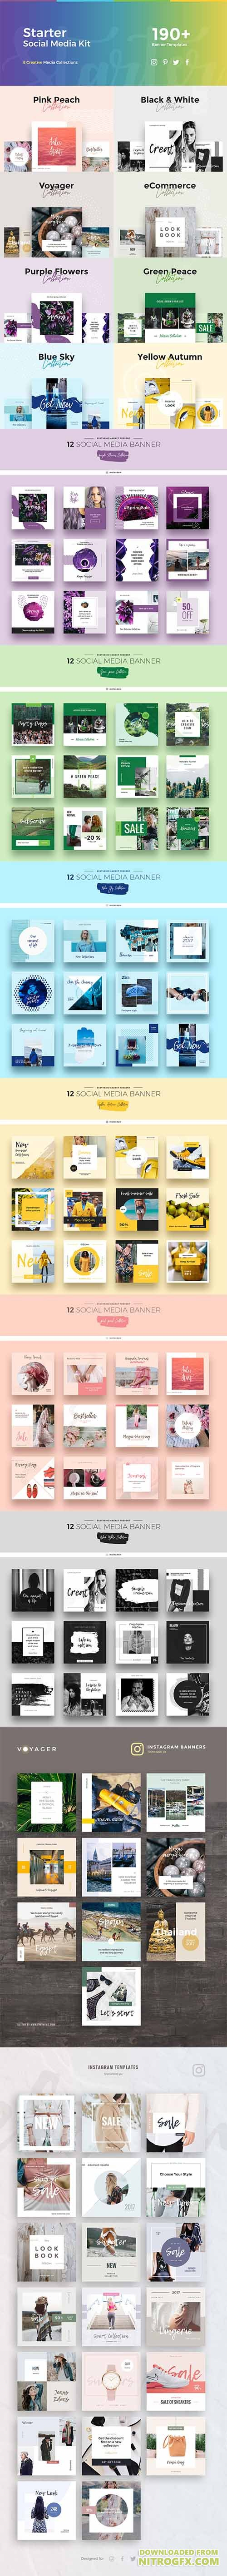 Starter Social Media Kit - Creative collection of banners for social media, advertising products and events